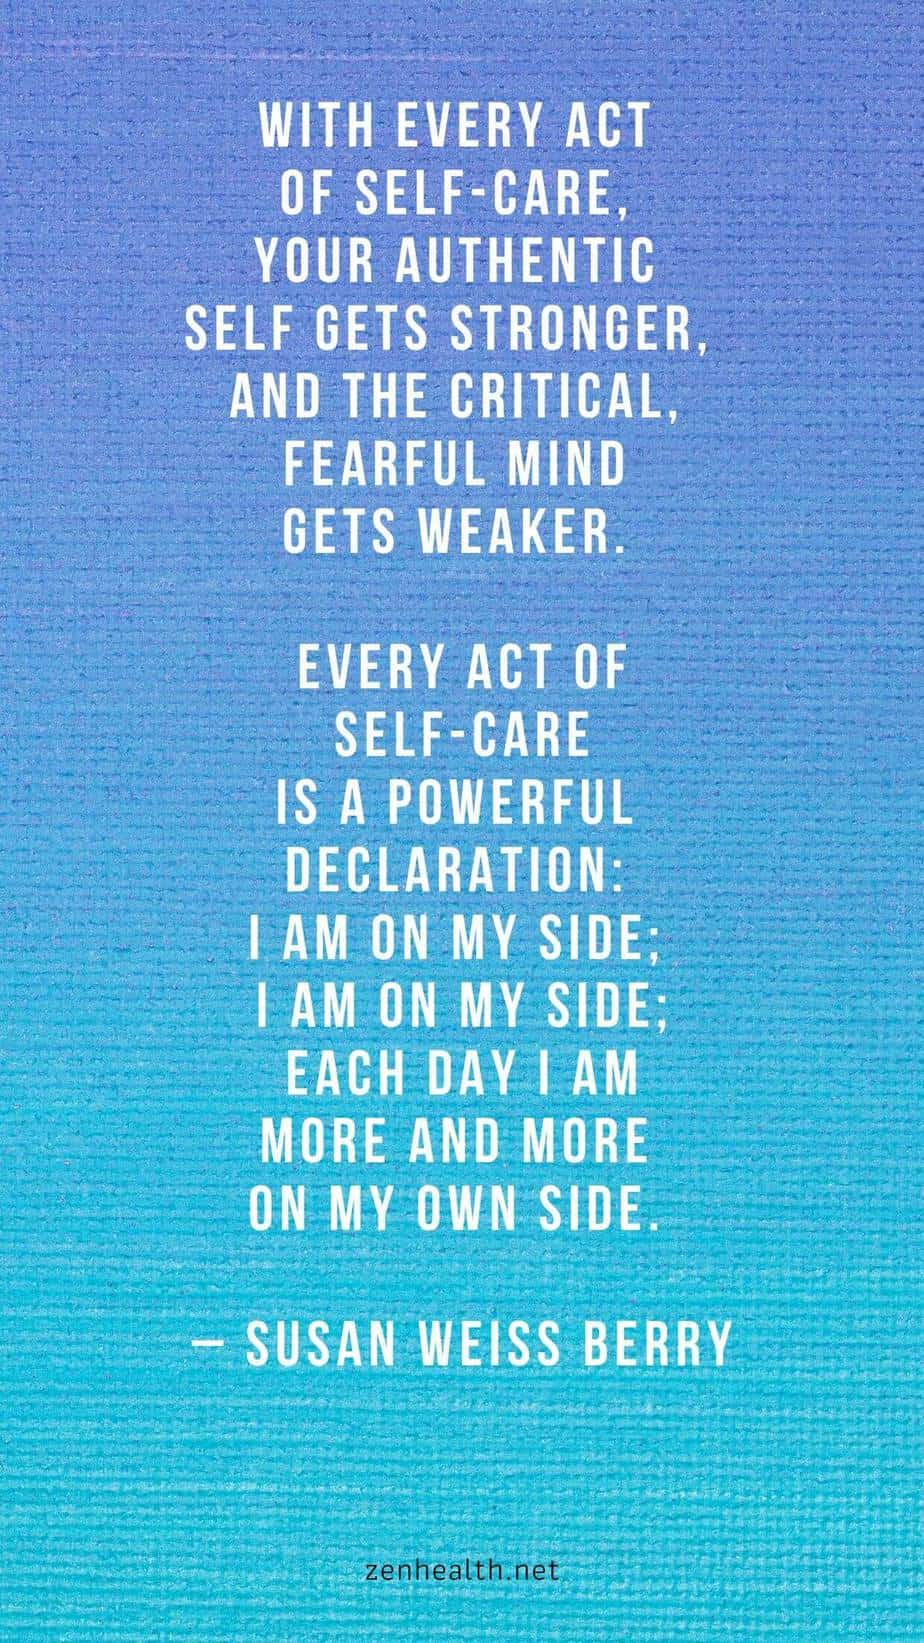 With every act of self-care, your authentic self gets stronger, and the critical, fearful mind gets weaker. Every act of self-care is a powerful declaration: I am on my side; I am on my side; each day I am more and more on my own side. - Susan Weiss Berry #selfcarequotes